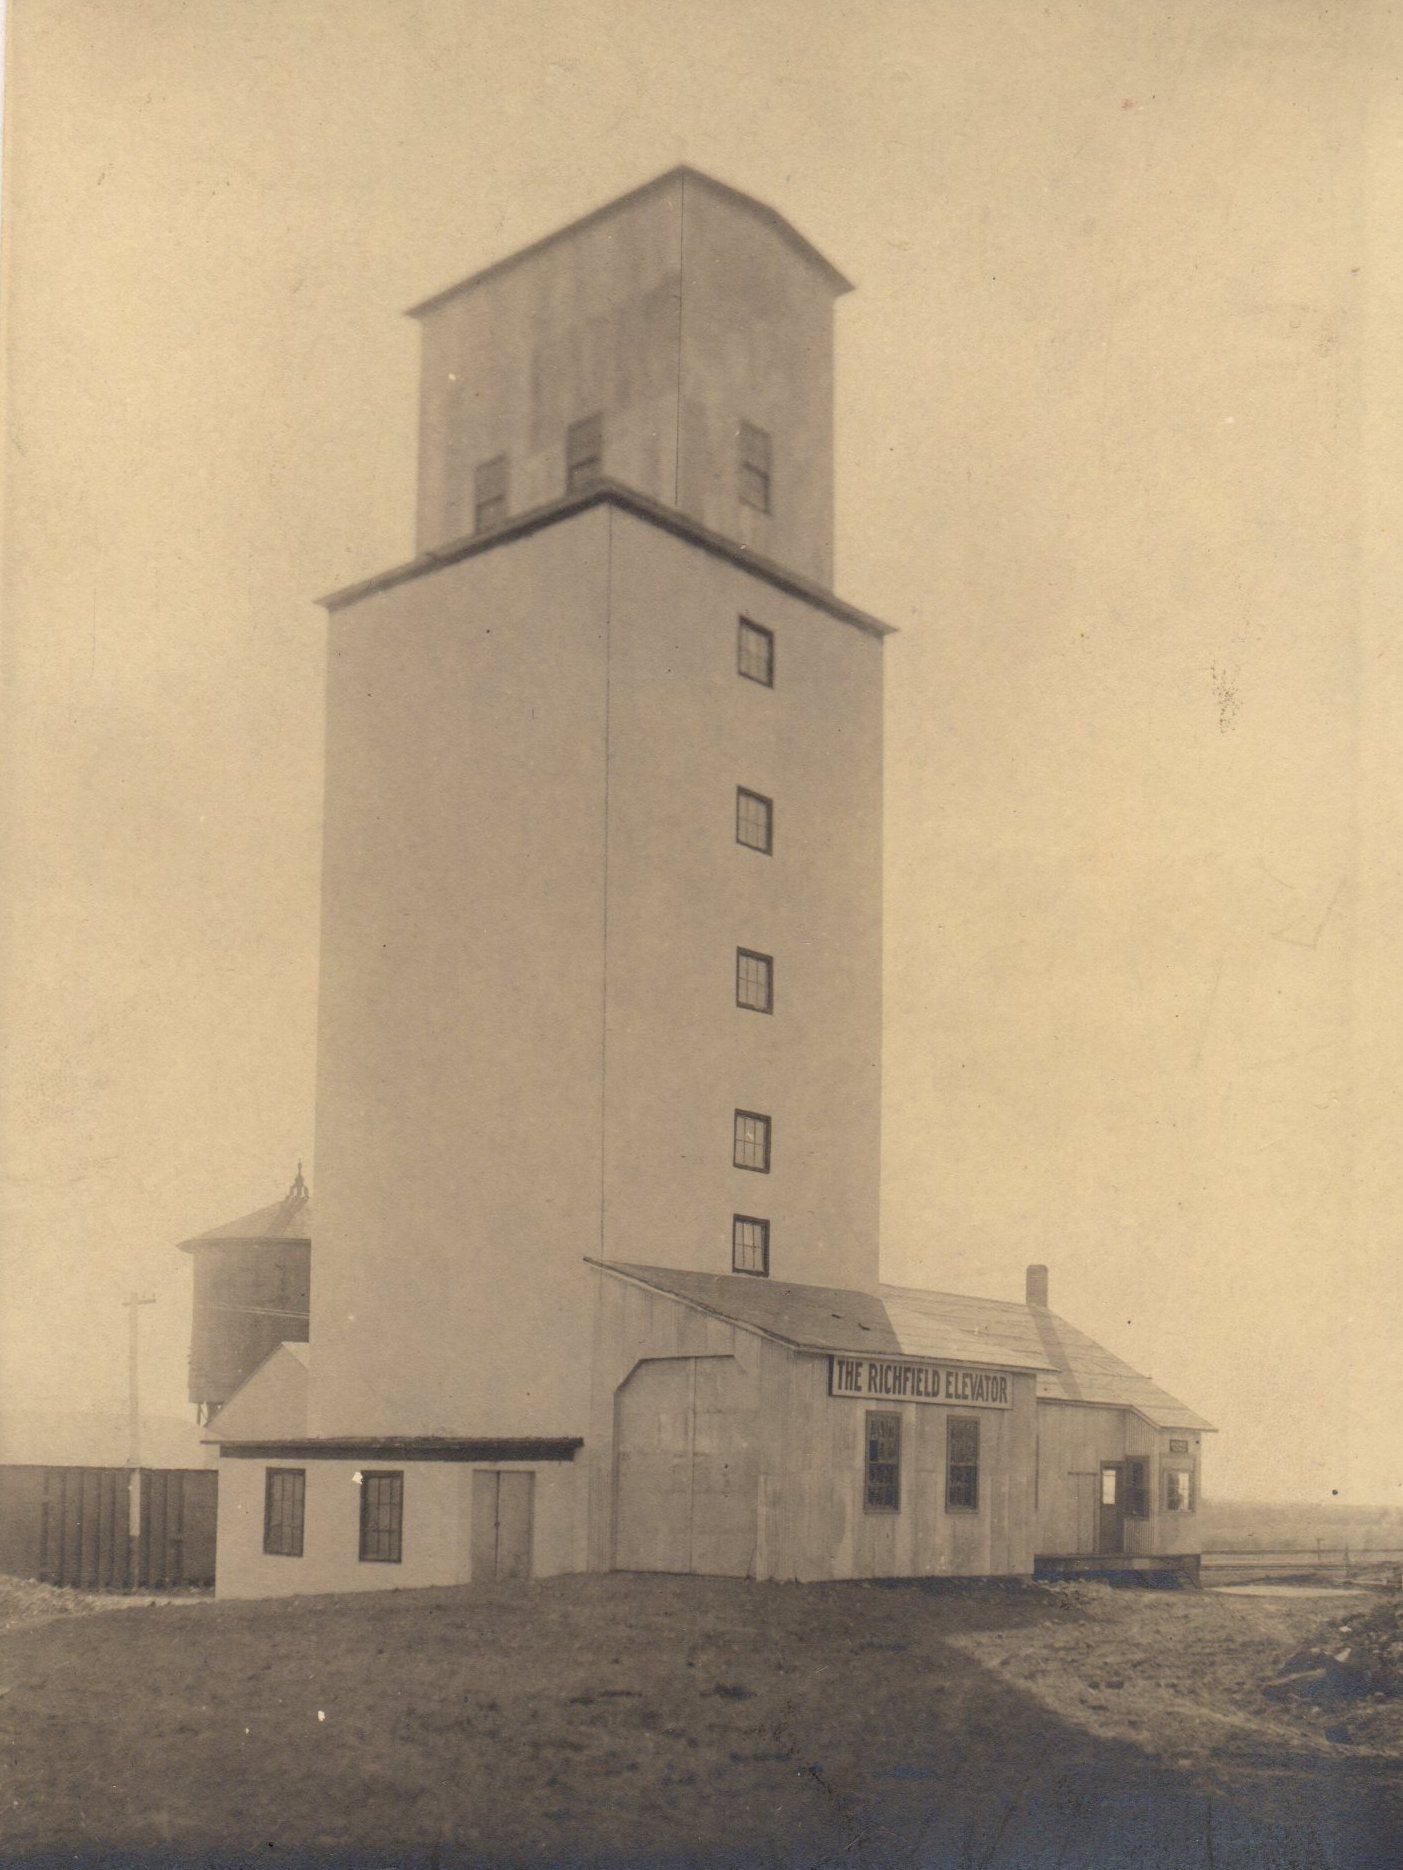 Historic Richfield, Idaho Grain Elevator